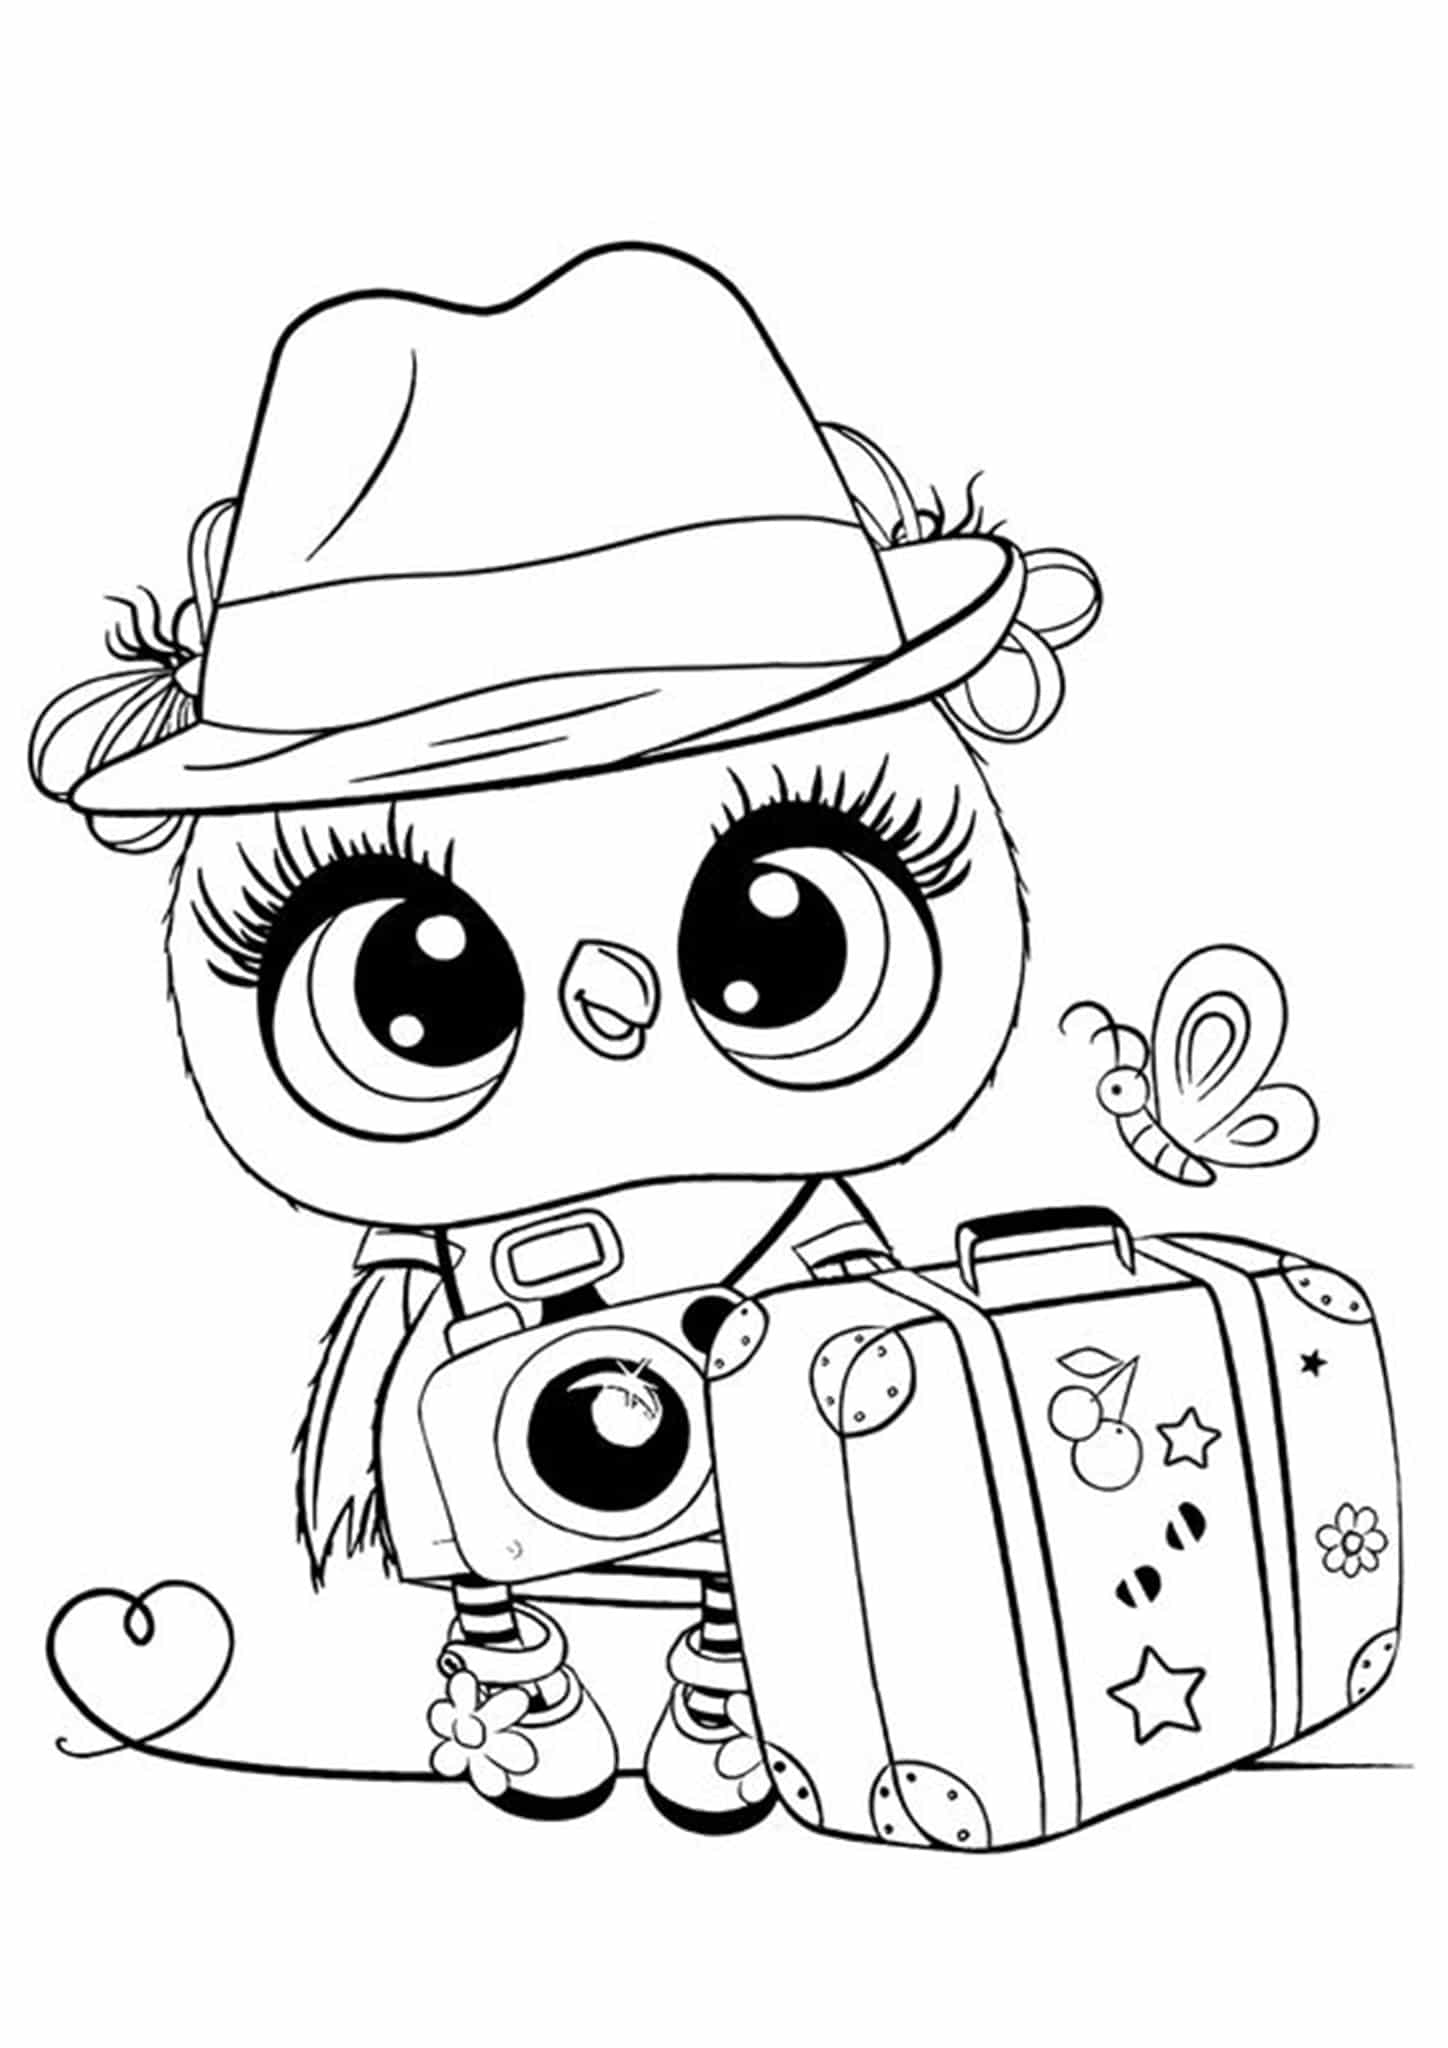 printable pictures to color owl coloring pages for adults free detailed owl coloring to printable color pictures